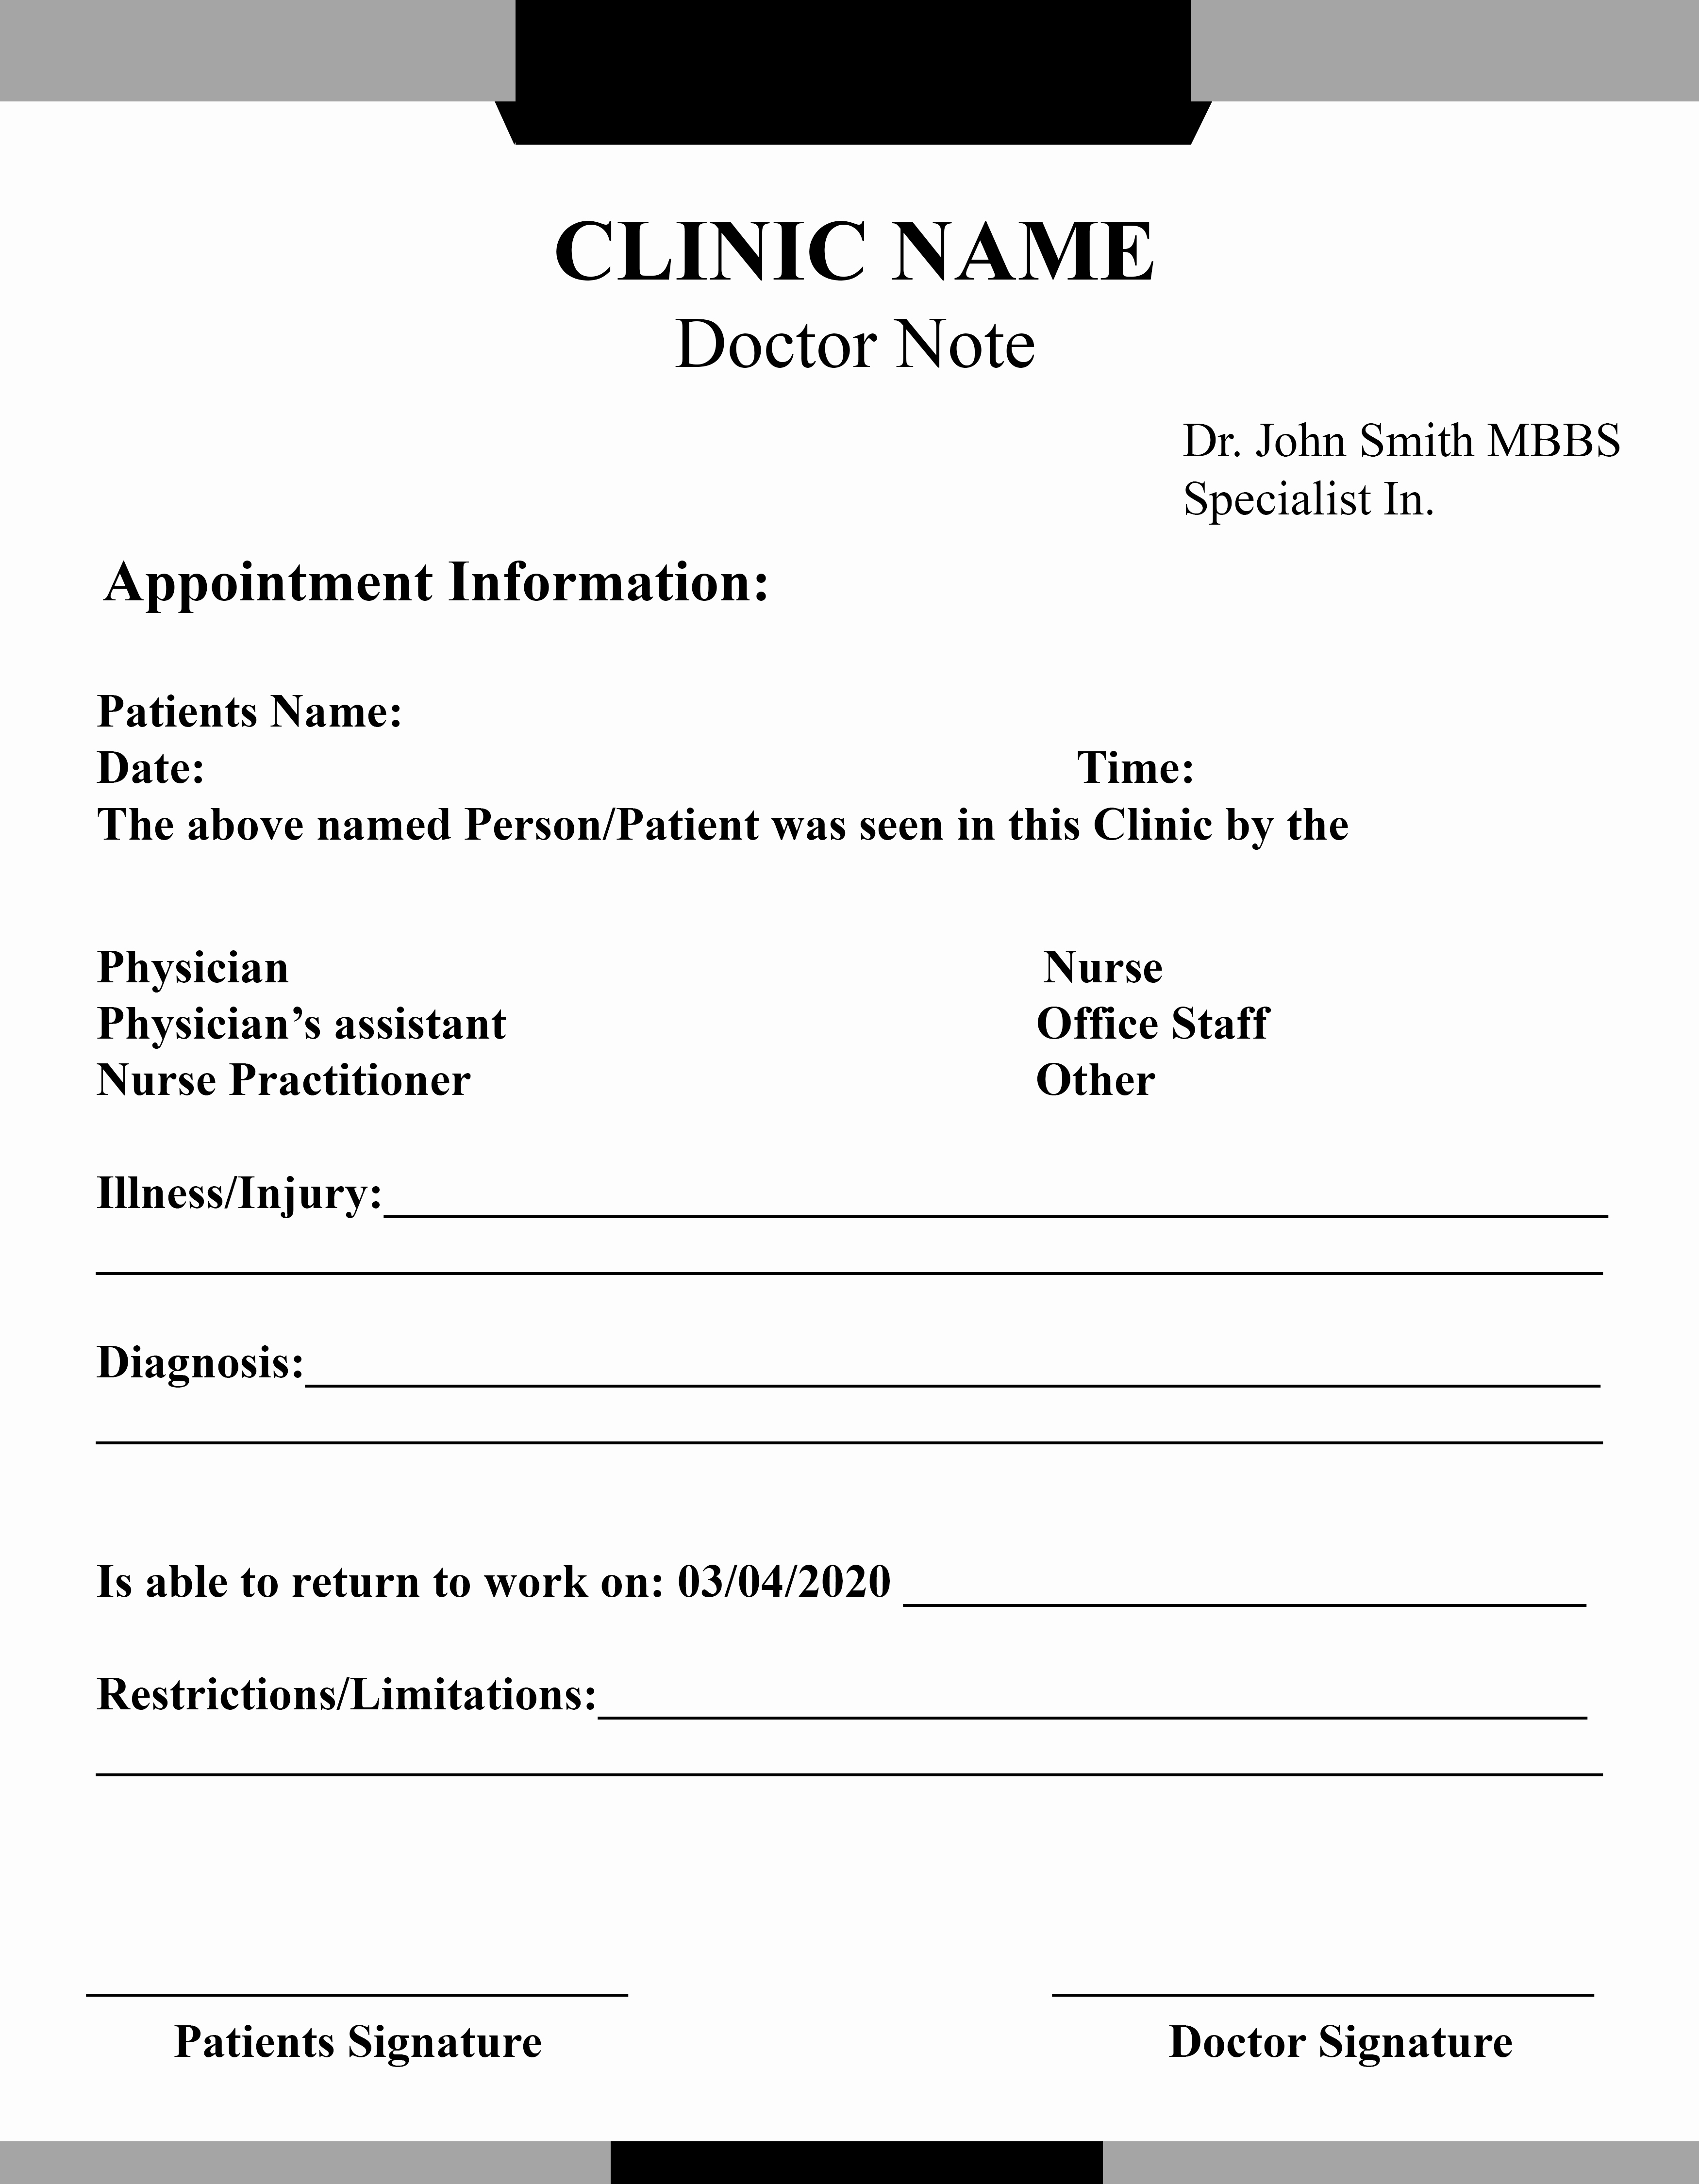 Doctors Note with Signature Beautiful 15 Free Printable Fake Doctors Note Template for Work